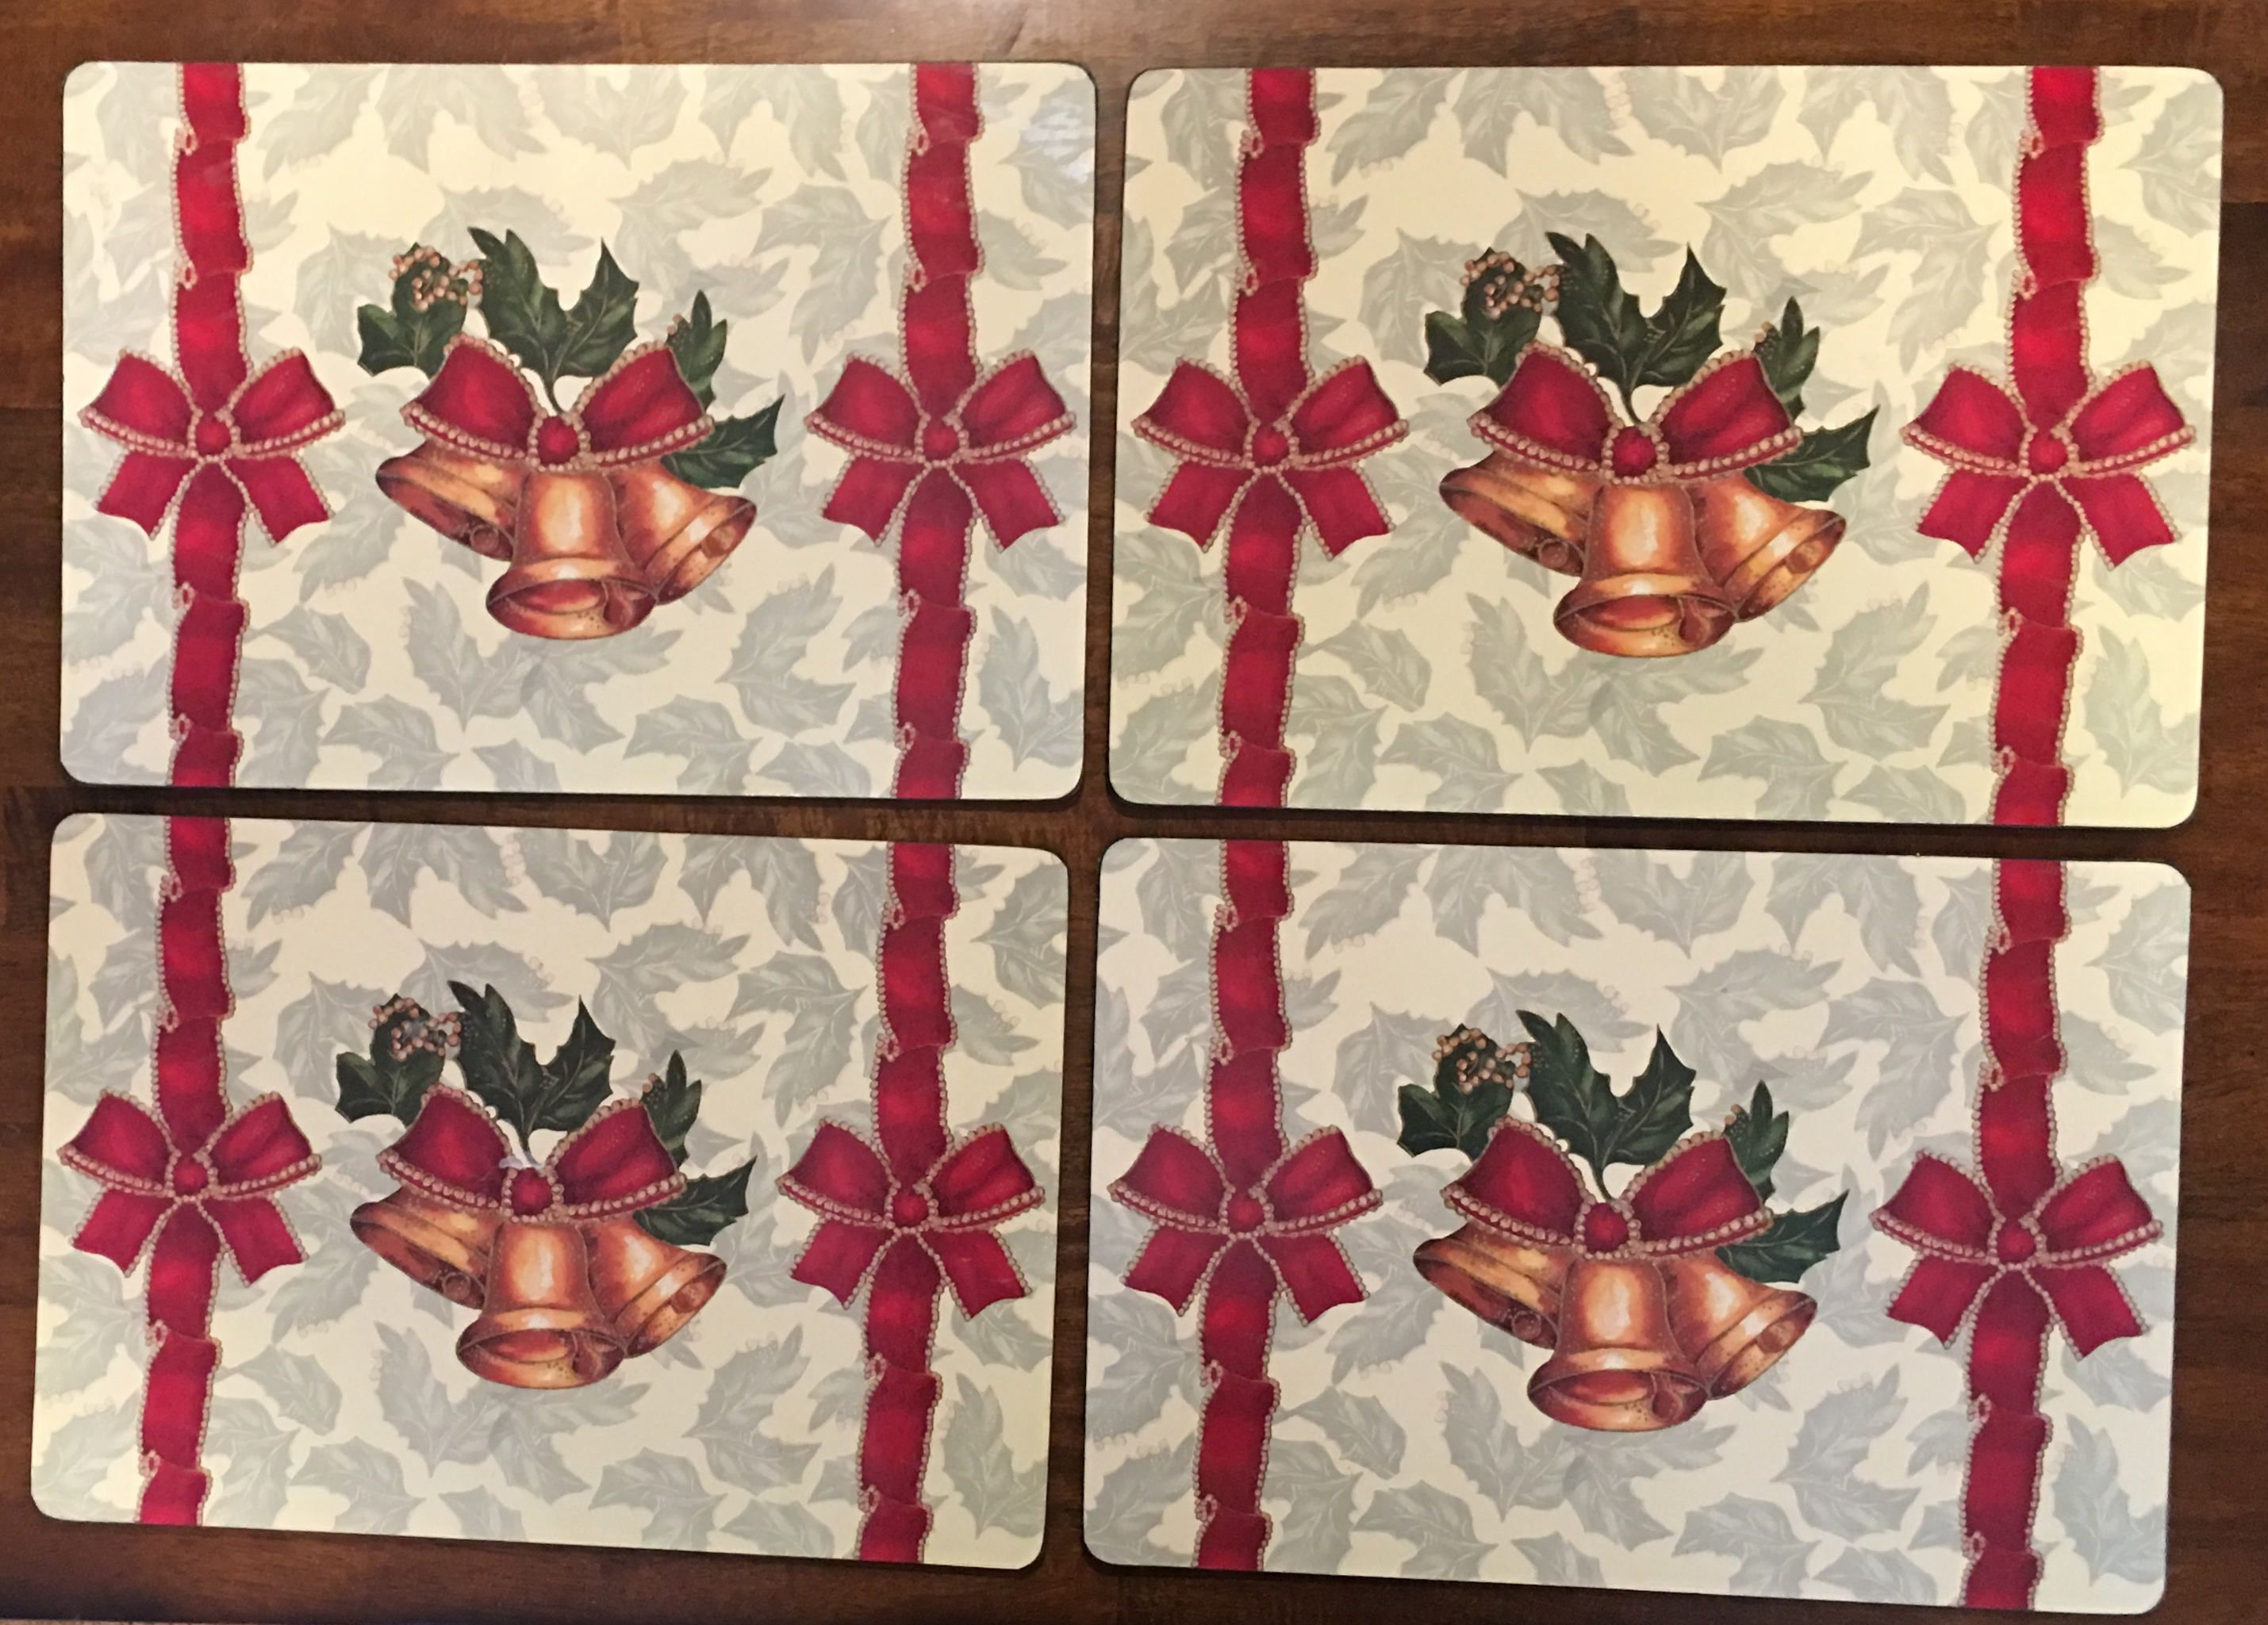 Placemats, Set Of 4 Cork Backed Placemats Christmas Placemats Christmas Bells